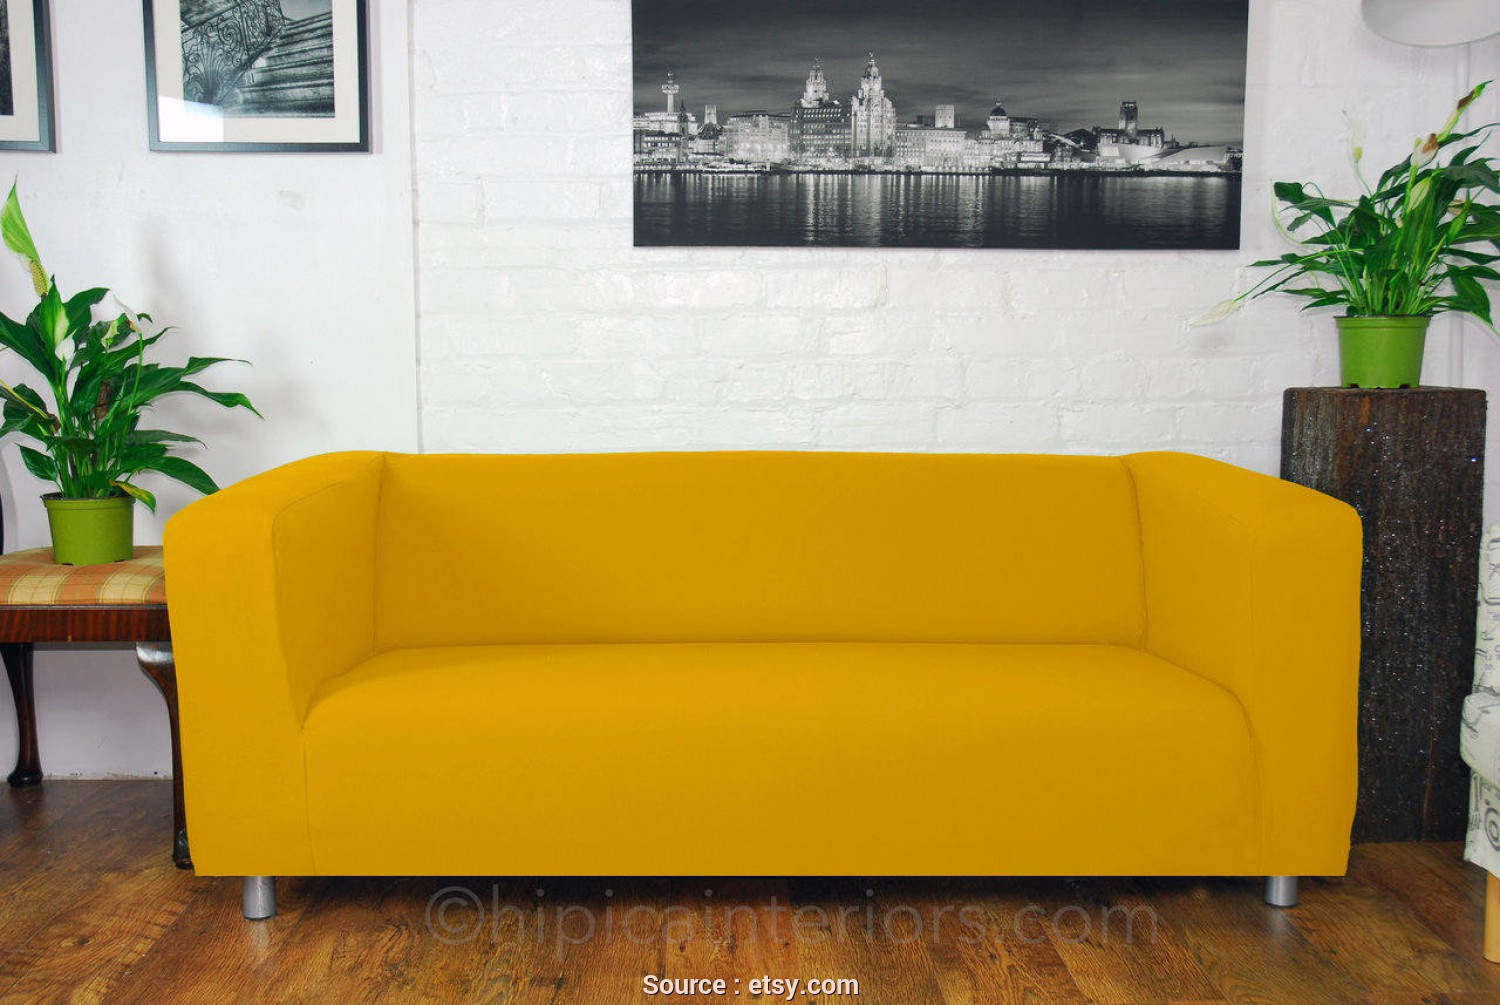 Ikea Klippan Sofa Covers Yellow, Casuale Ikea Klippan Custom Made Sofa Slip Covers. Easy To, Marigold